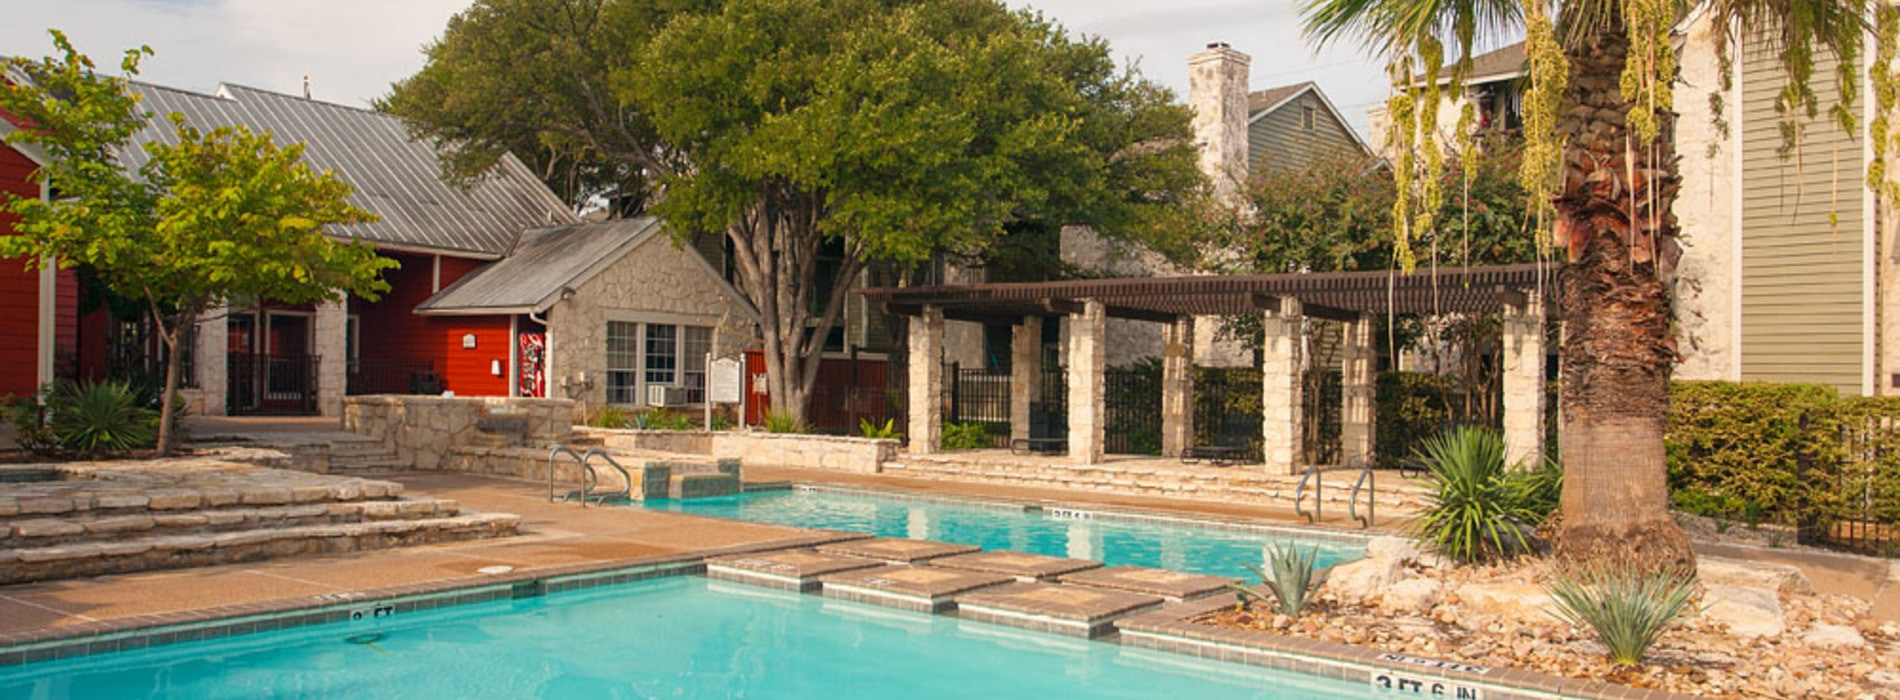 If location, convenience, and comfort are important to you, then Logan's Mill is the place to call home! Just 15 minutes from downtown Austin, our pet-friendly community offers generous one and two bedroom apartments and thoughtful layouts.